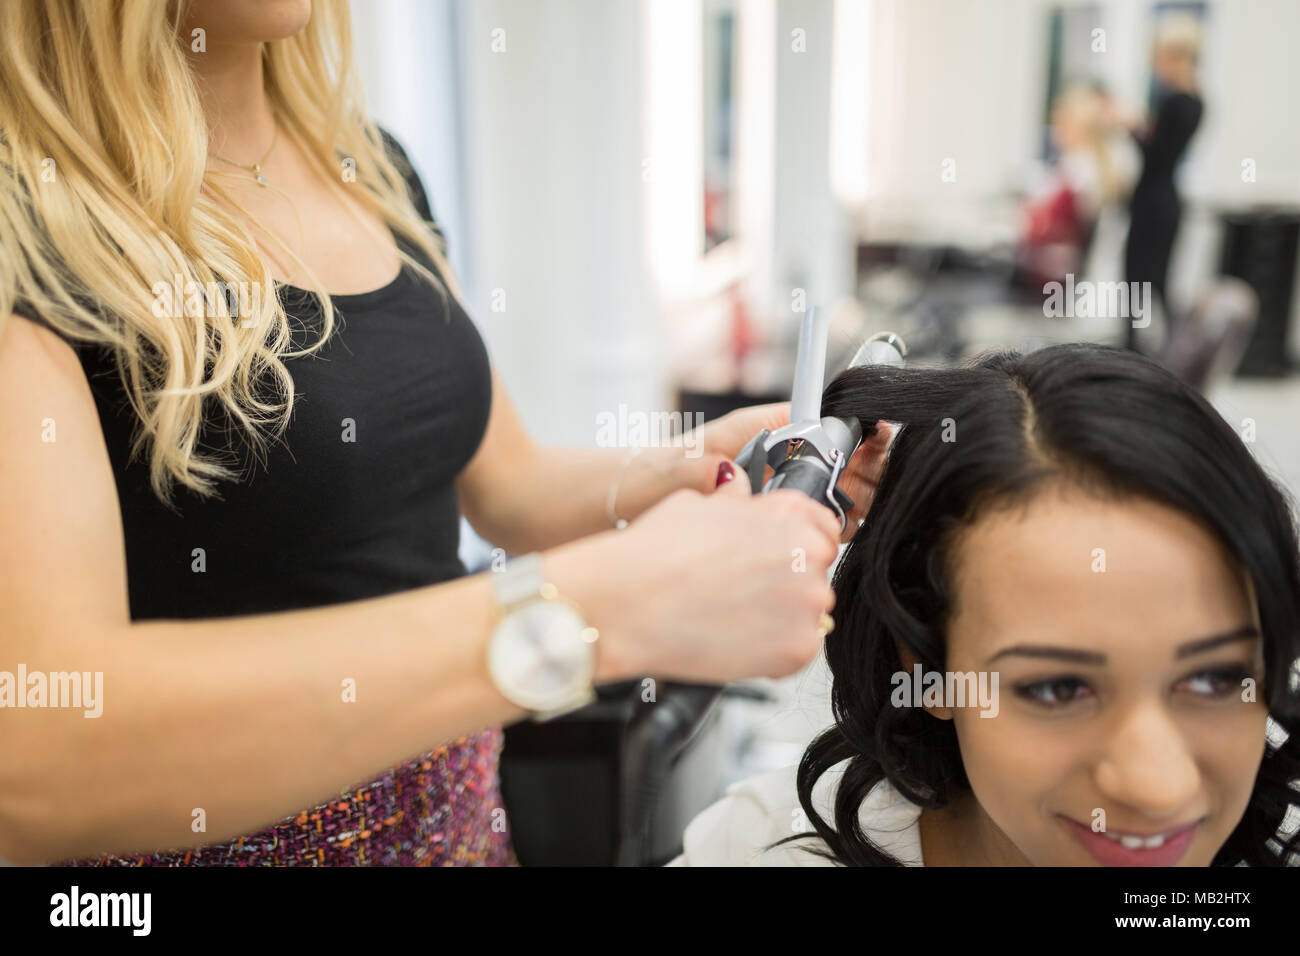 Cropped portrait of happy customer having hair curled in salon - Stock Image